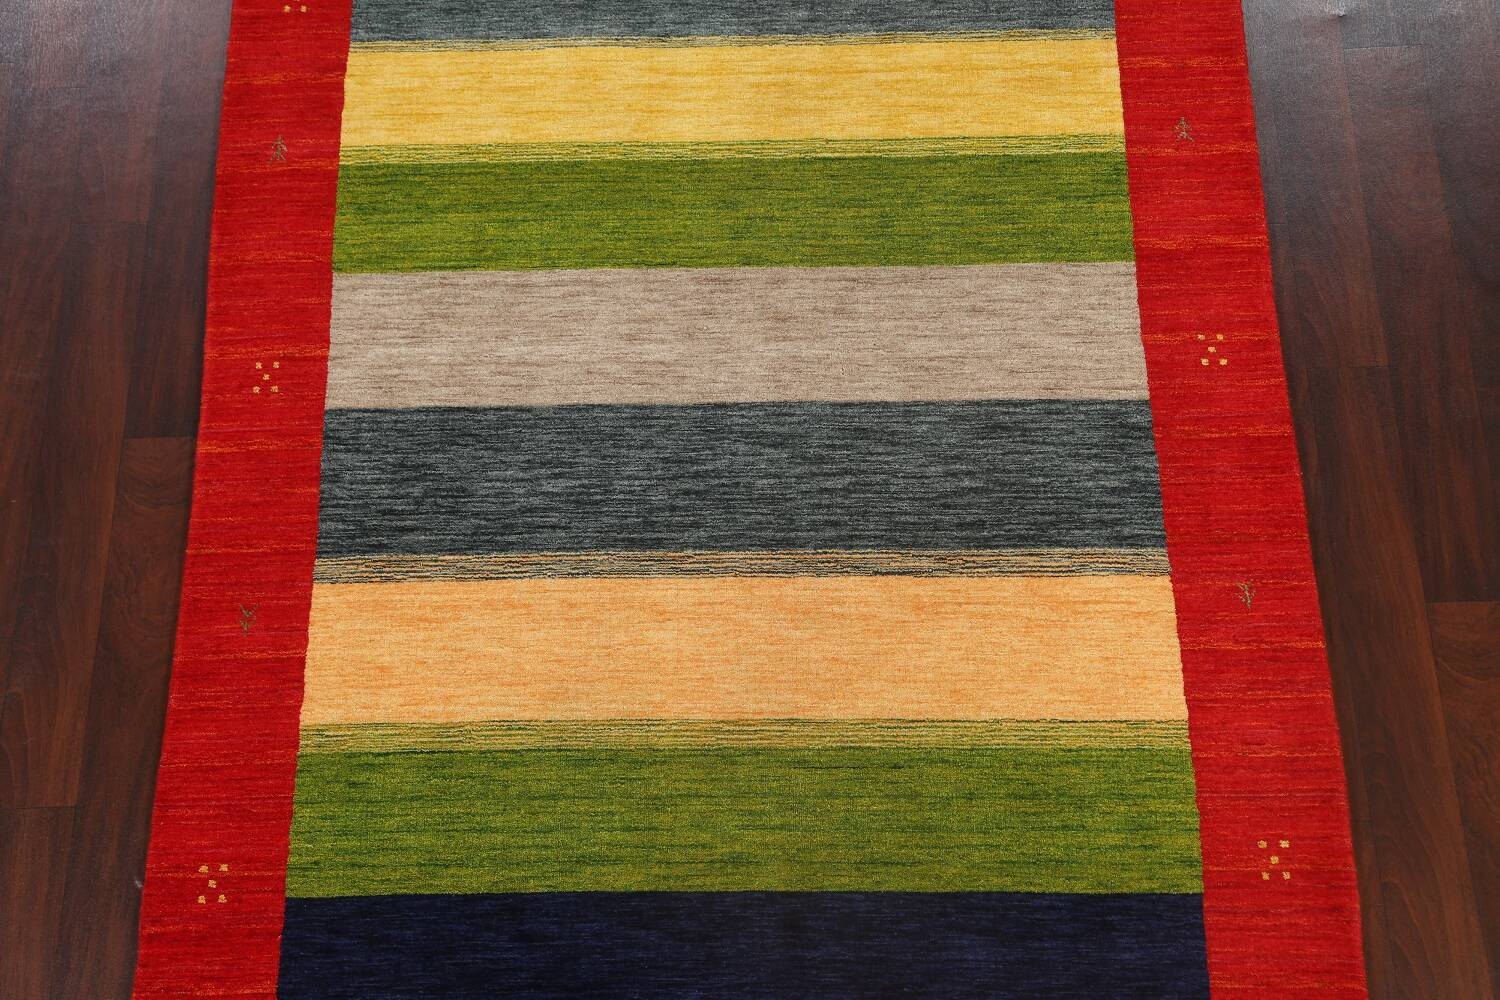 Abstract Contemporary Gabbeh Oriental Area Rug 6x8 image 3